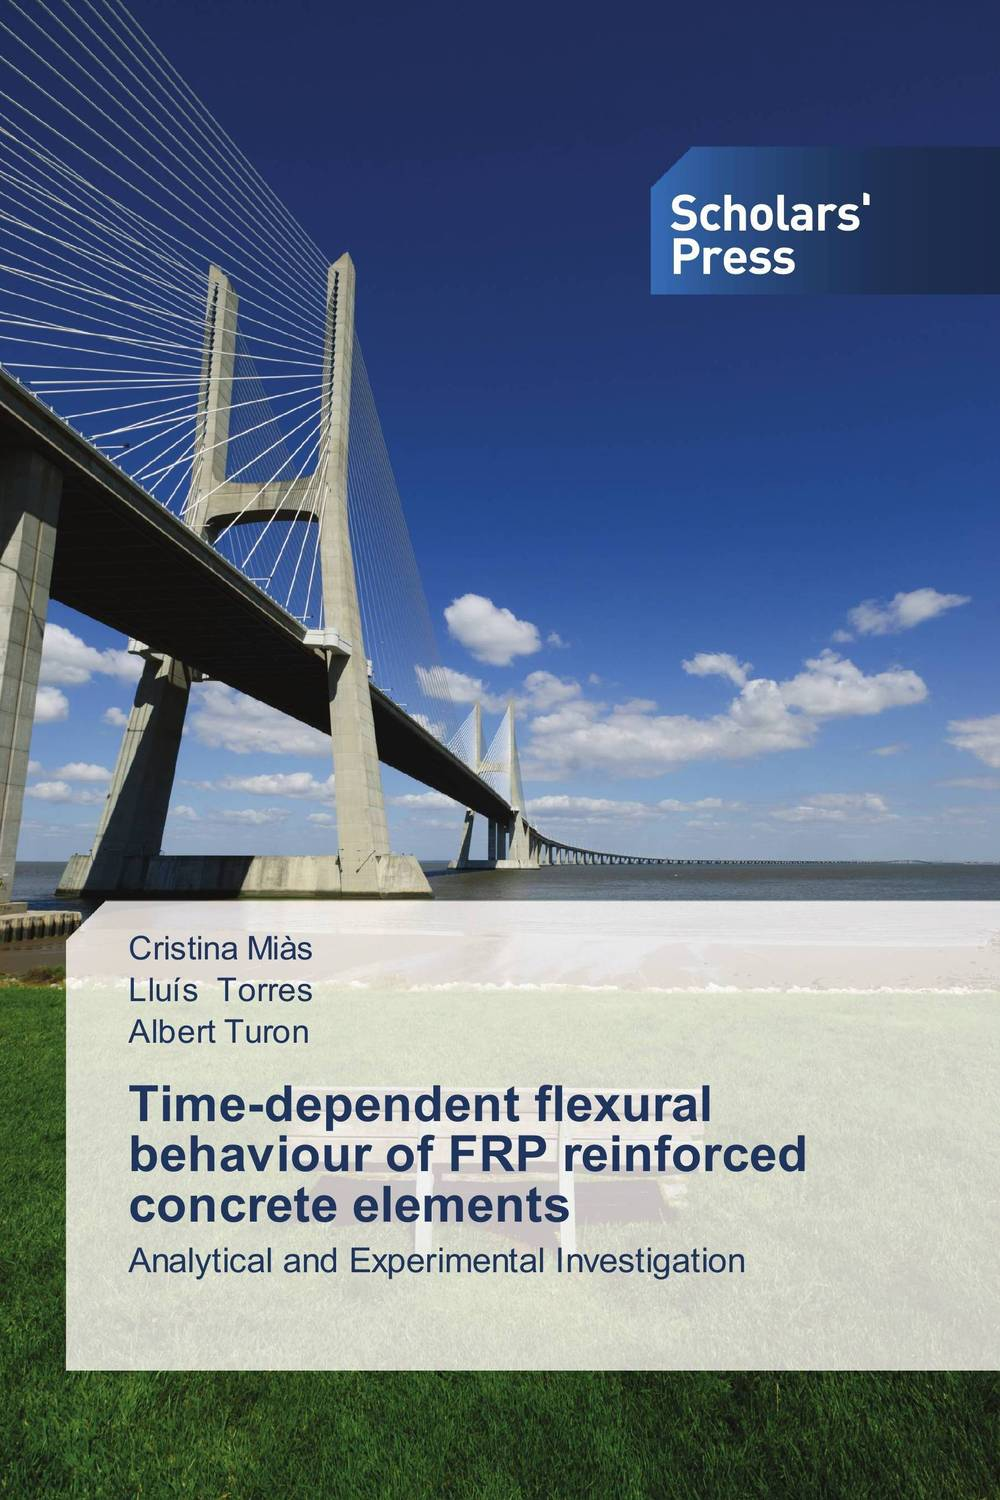 Time-dependent flexural behaviour of FRP reinforced concrete elements psychiatric consultation in long term care